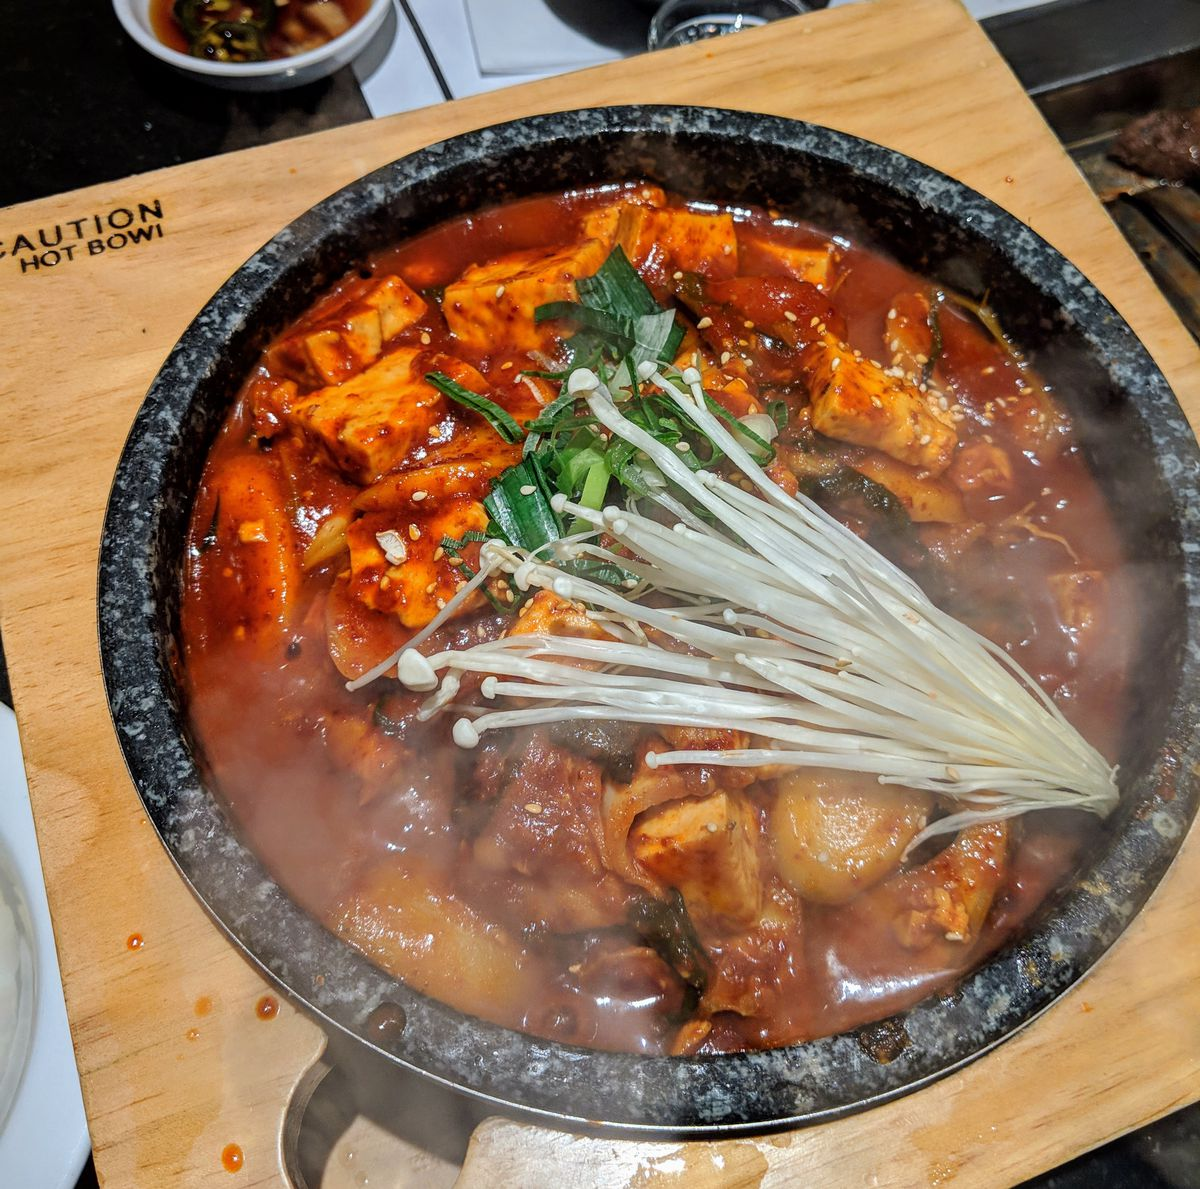 A claypot full of red broth and fish.